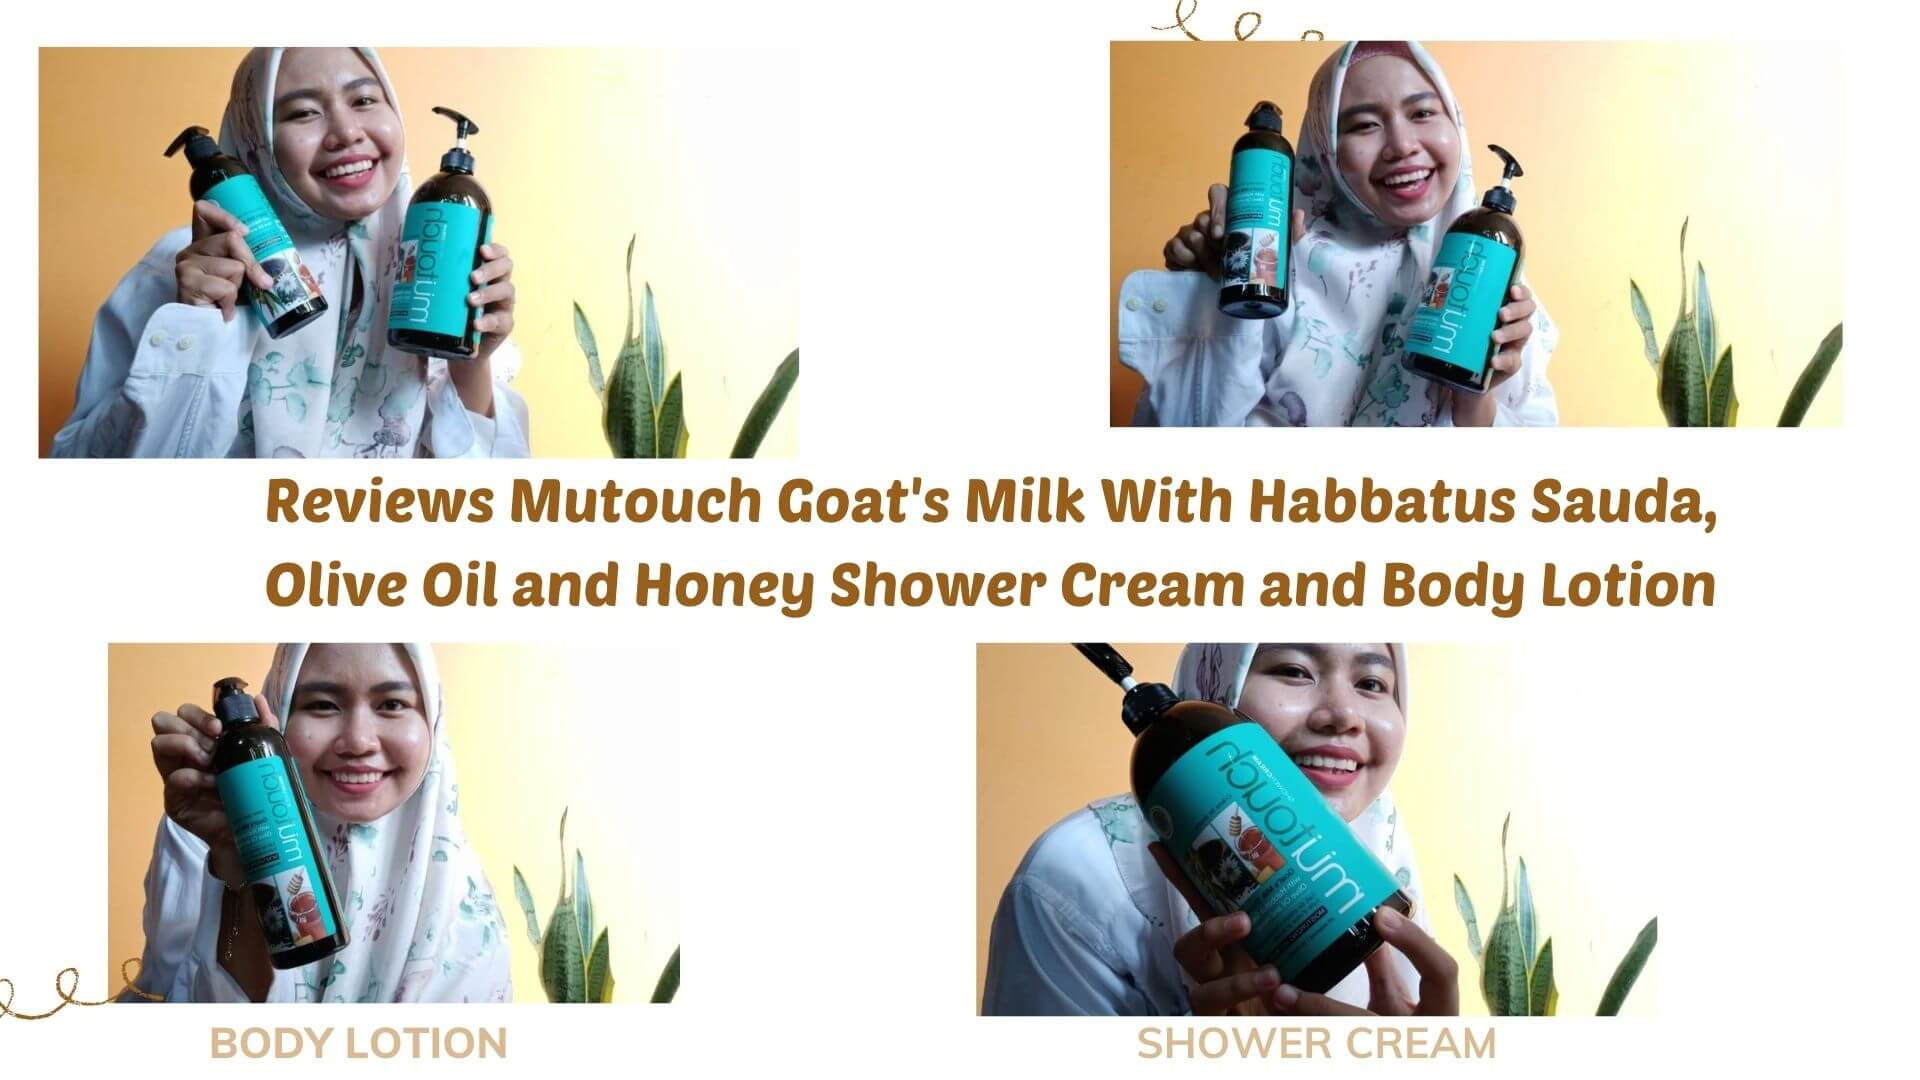 Review Mutouch Goat's Milk With Habbatus Sauda, Olive Oil and Honey